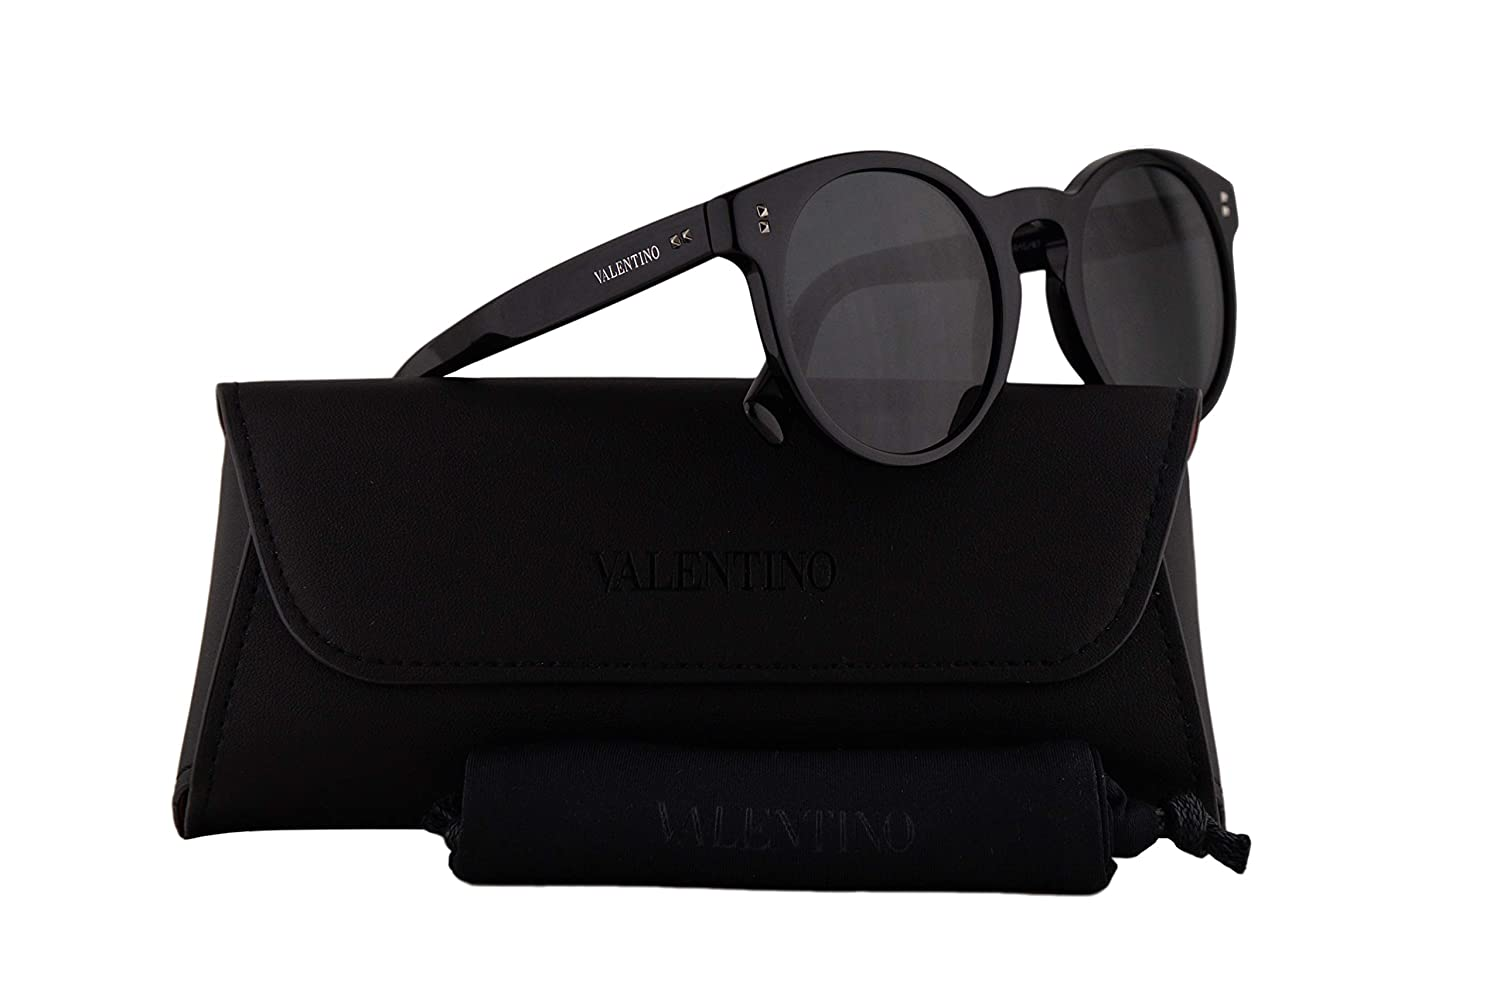 Amazon.com: Valentino VA 4009 - Gafas de sol, 1.850 in ...